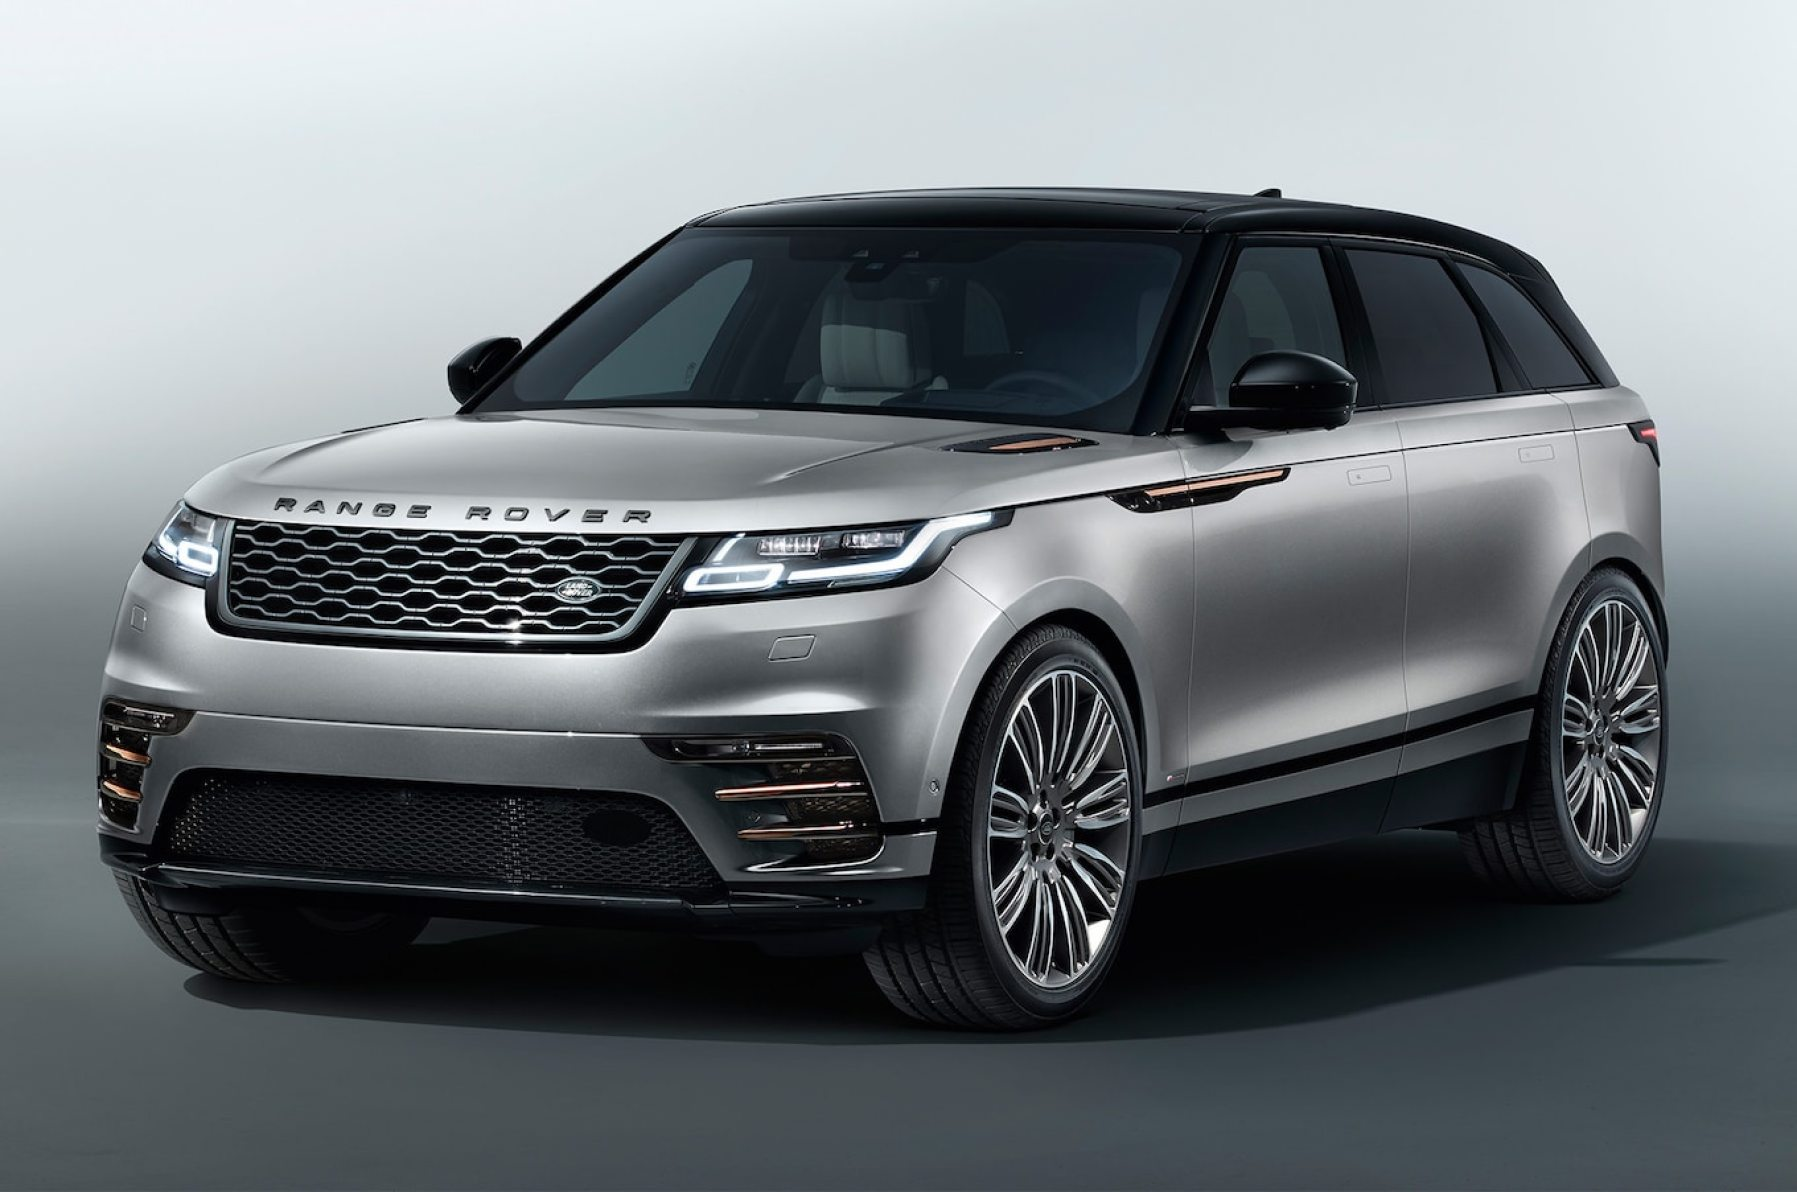 Styling Size up 2018 Range Rover Velar vs The petition